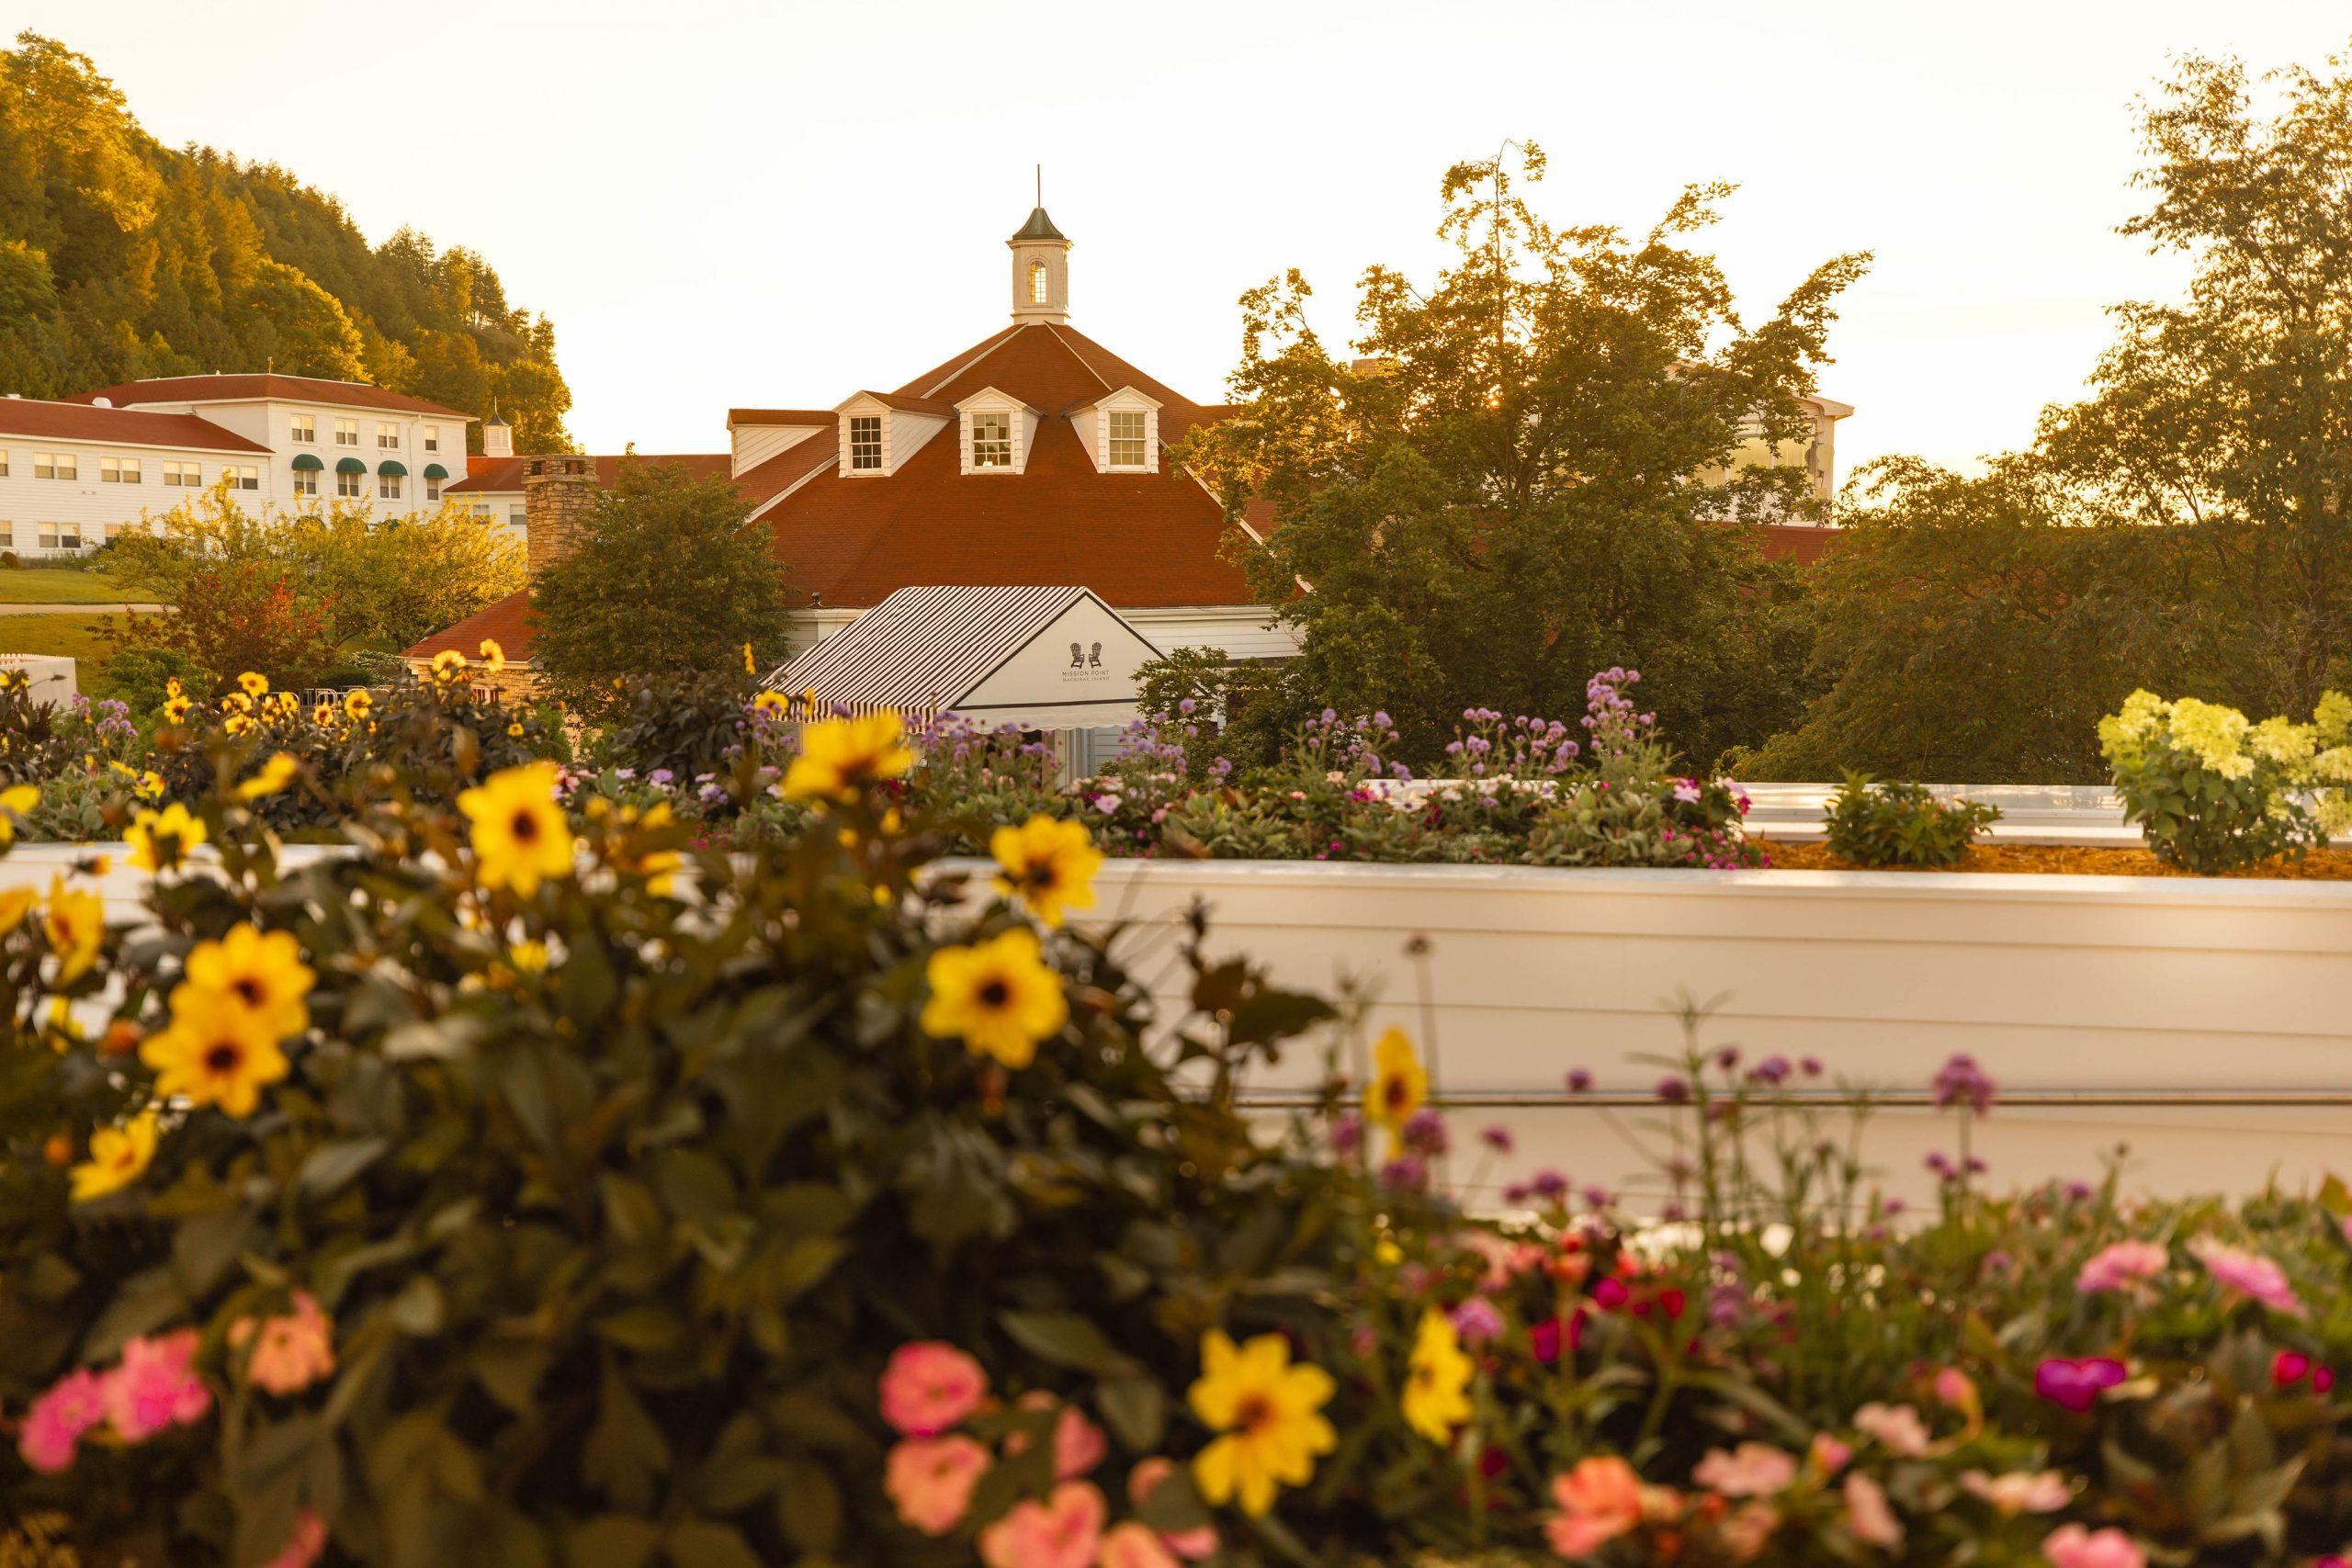 Mission Point Resort Review on Mackinac Island Midwest Michigan Luxury Hotels by Annie Fairfax